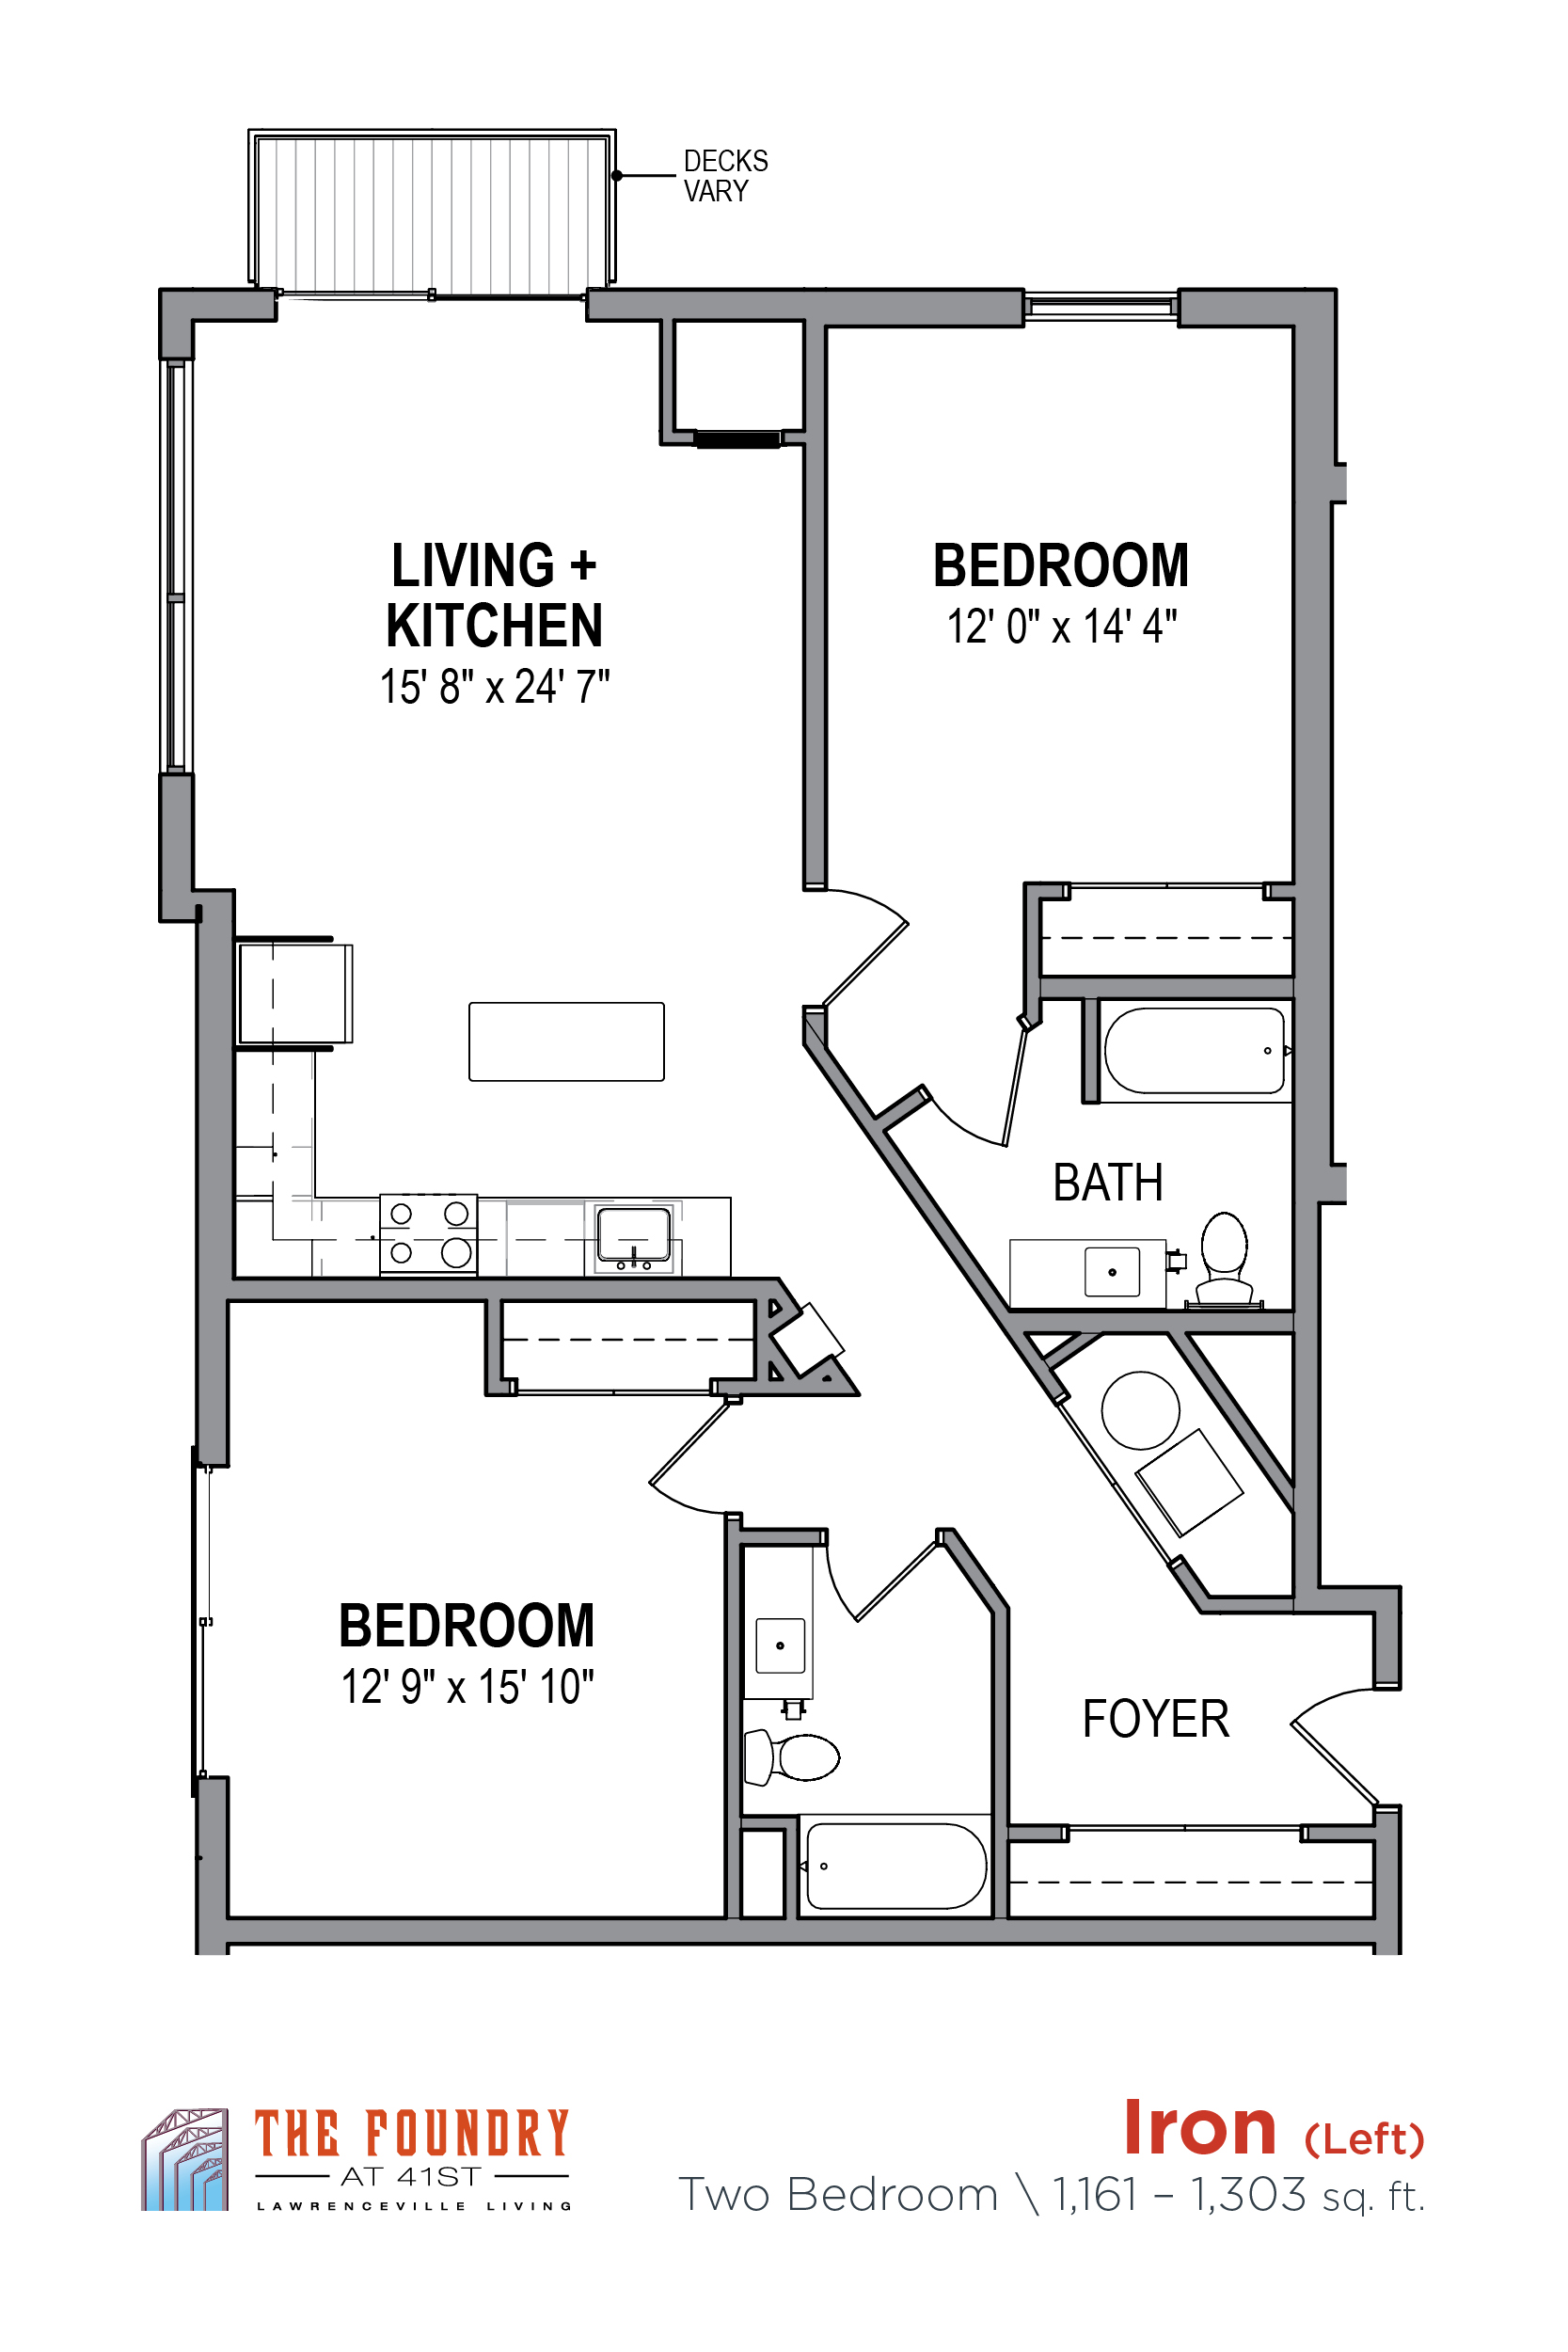 Floor Plan of the Foundry Iron L Apartment, at The Foundry at 41st Apartments, Lawrenceville, Pittsburgh, PA